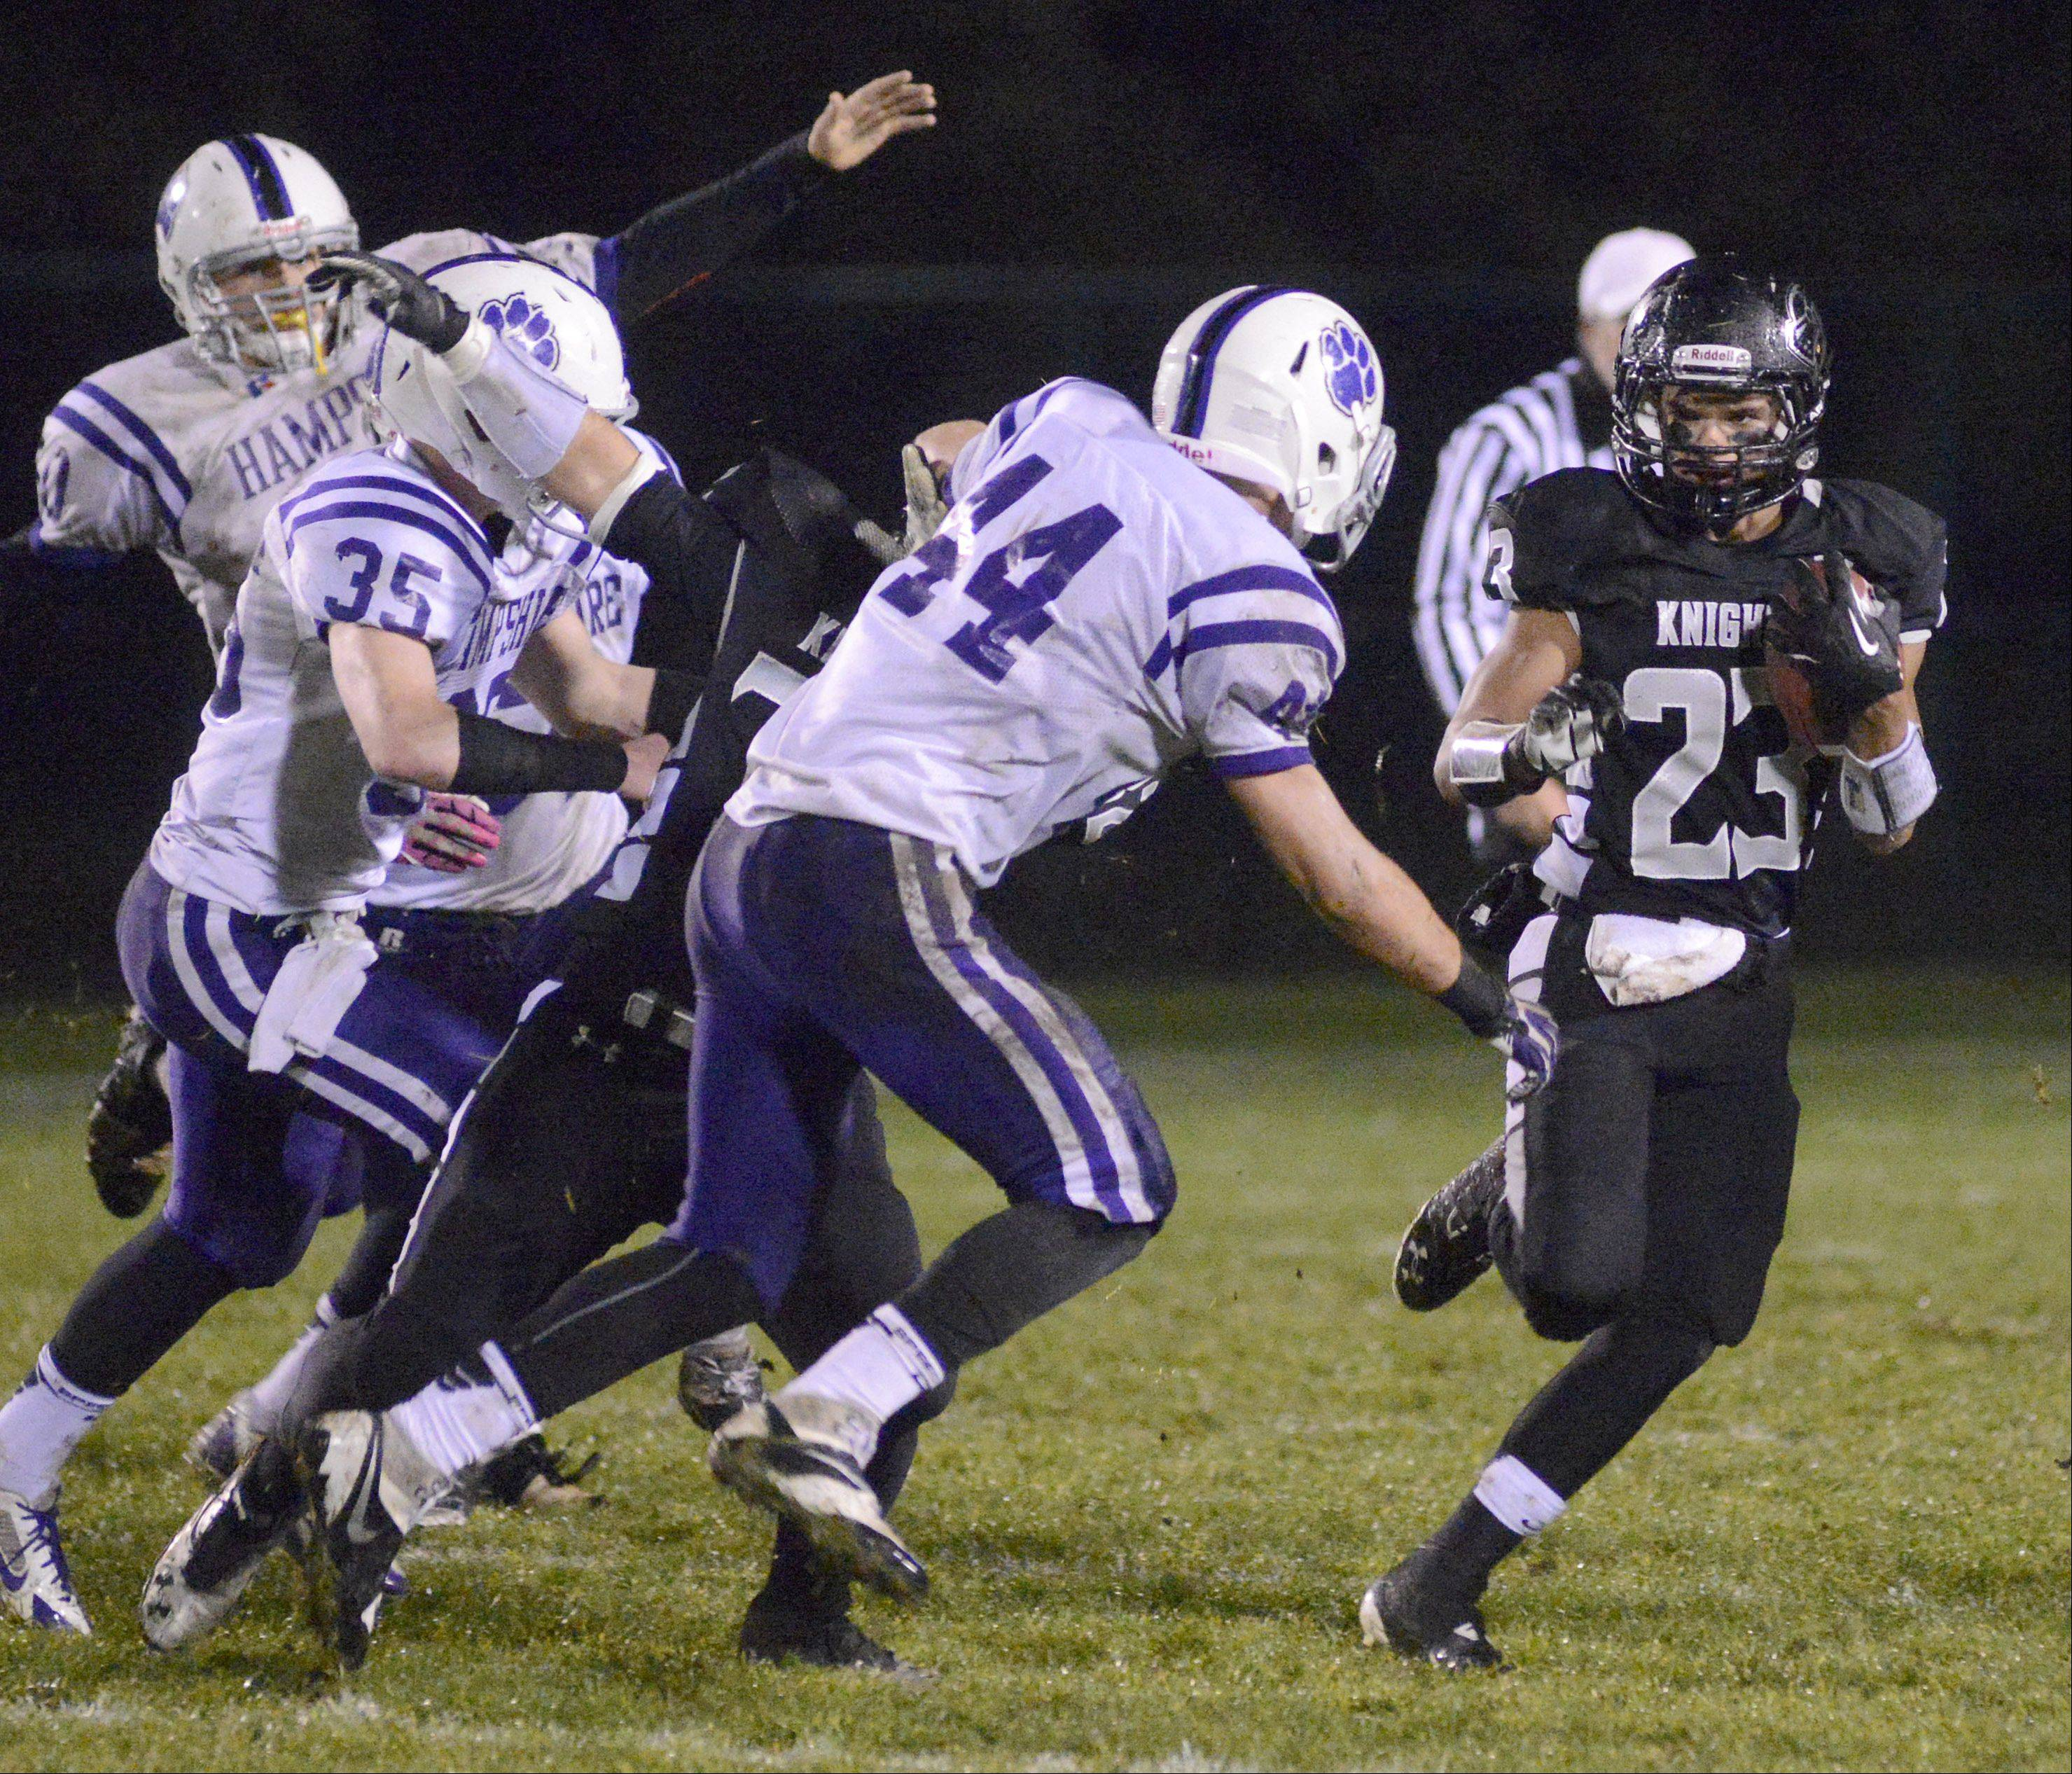 Kaneland's Gio Regalado steers clear of Hampshire's Mason Fleury in the first quarter on Friday, November 1.